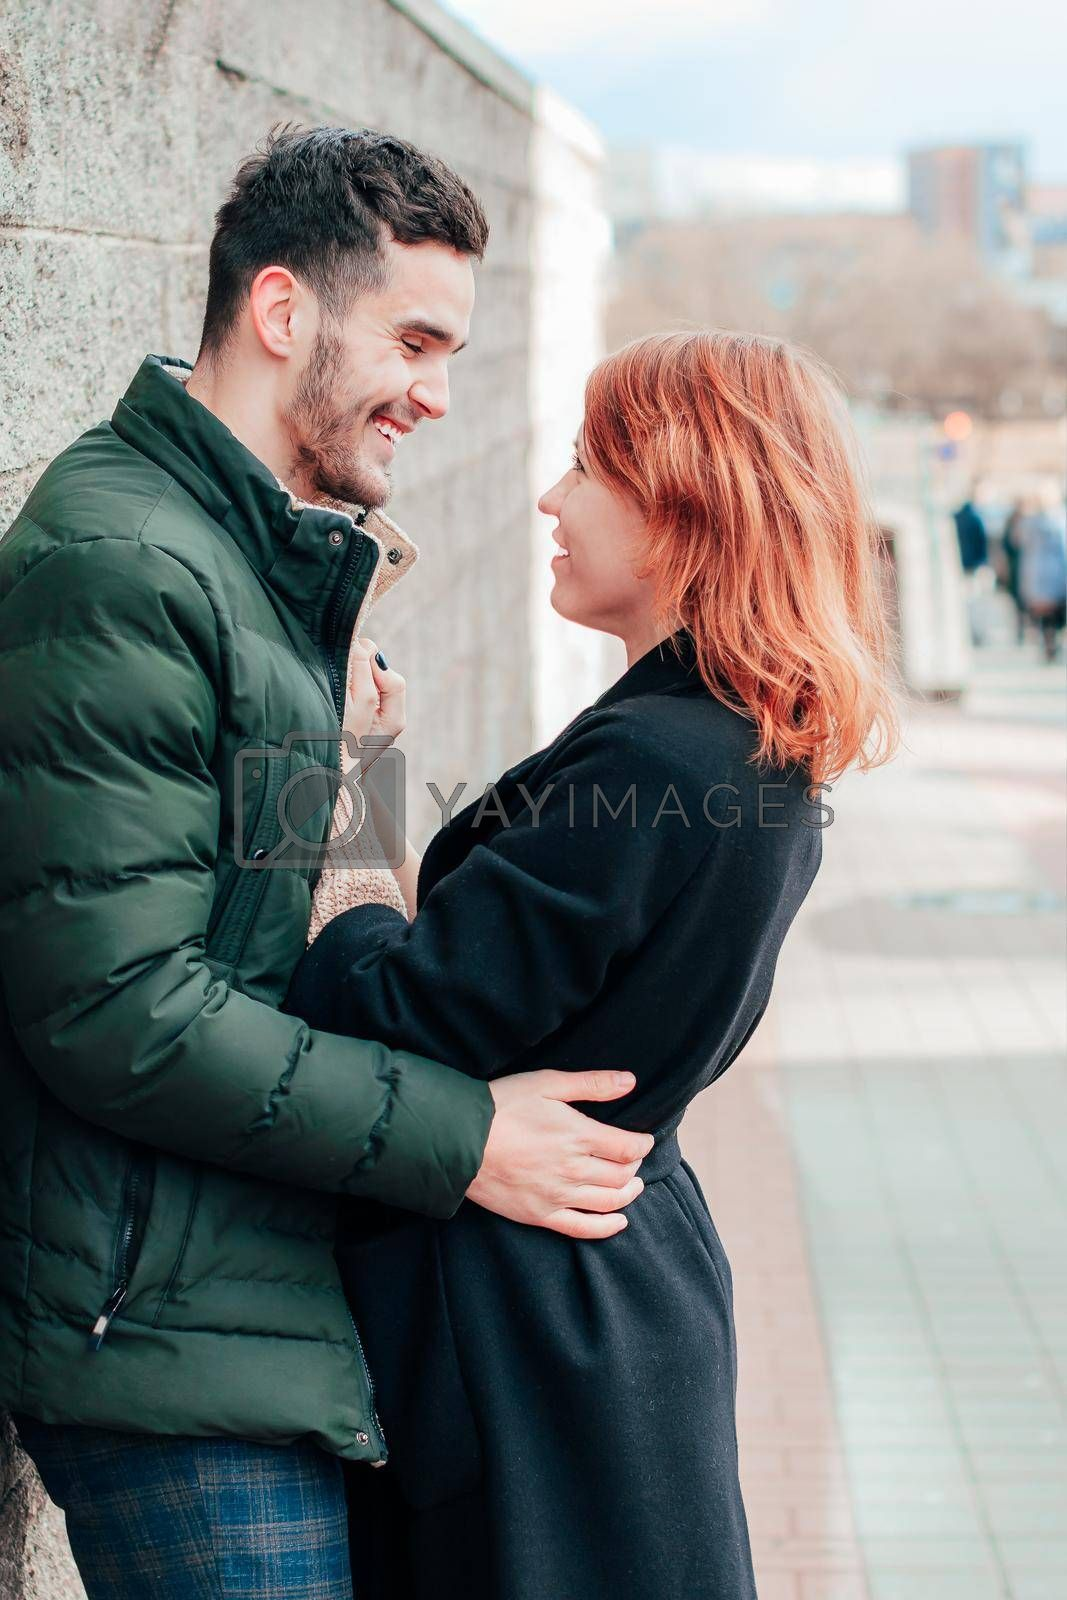 Happy Loving Couple Smiling and Hugging on the Street. Two Happy People Love Story - Medium Shot Portrait